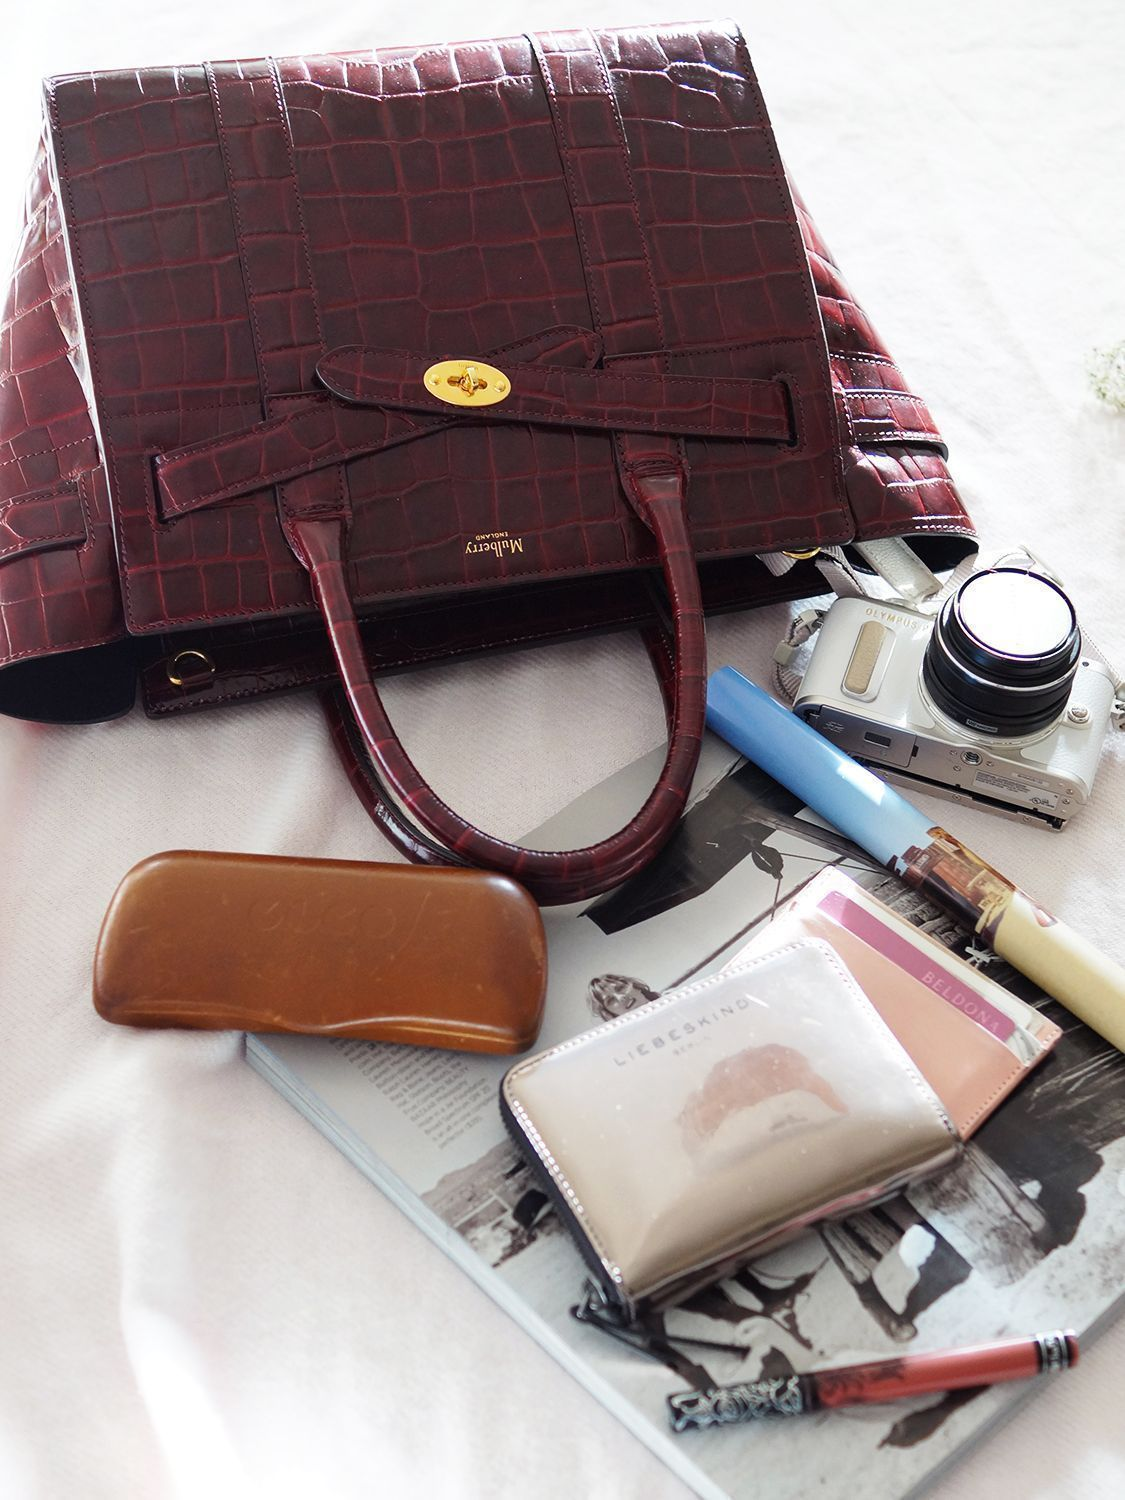 Let's see what's in my Mulberry bag #mulberrybag Let's see what's in my Mulberry bag #mulberrybag Let's see what's in my Mulberry bag #mulberrybag Let's see what's in my Mulberry bag #mulberrybag Let's see what's in my Mulberry bag #mulberrybag Let's see what's in my Mulberry bag #mulberrybag Let's see what's in my Mulberry bag #mulberrybag Let's see what's in my Mulberry bag #mulberrybag Let's see what's in my Mulberry bag #mulberrybag Let's see what's in my Mulberry bag #mu #mulberrybag